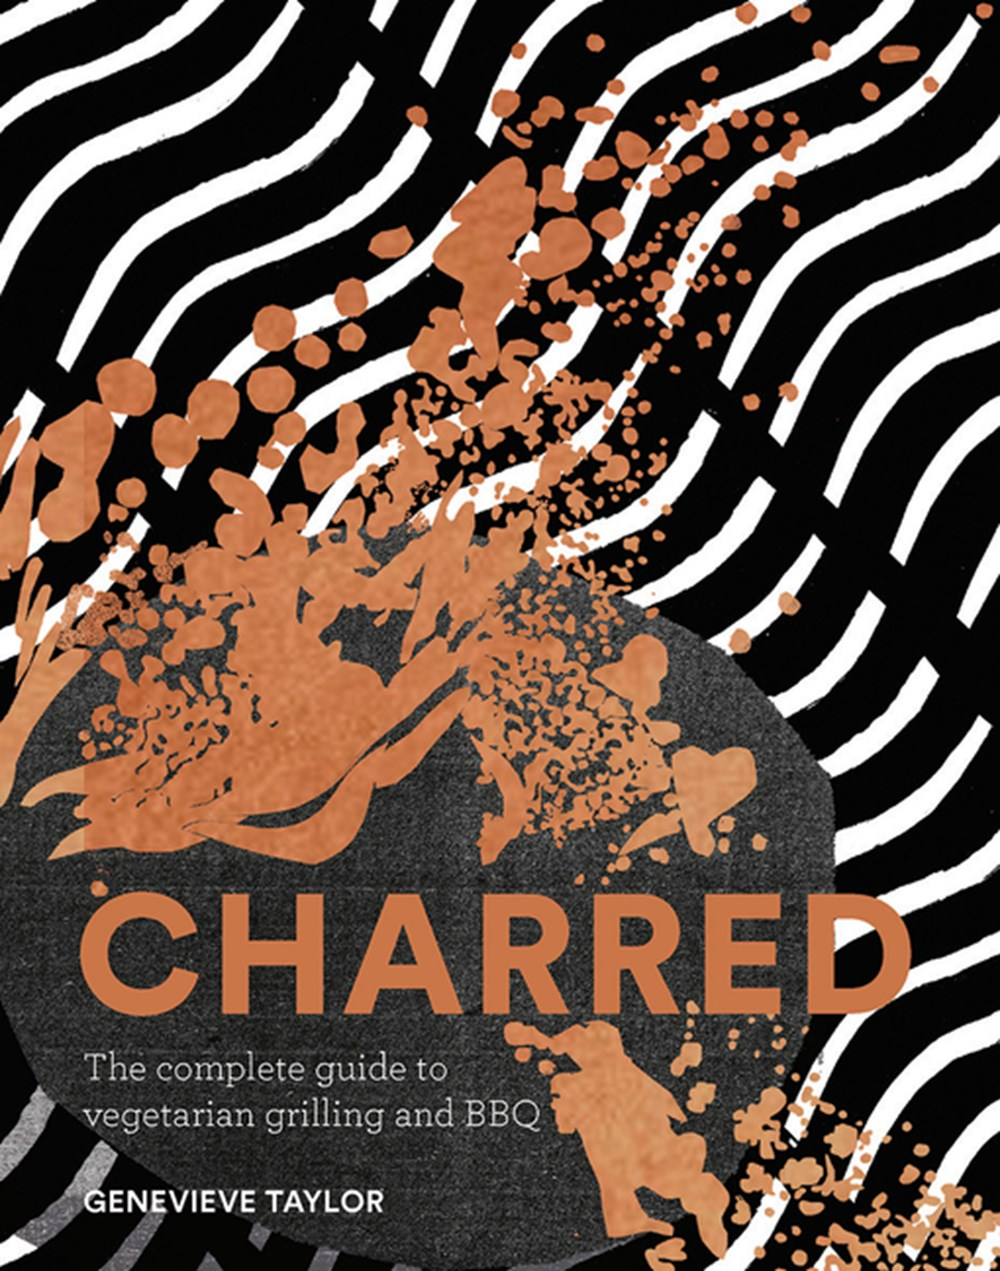 Charred The Complete Guide to Vegetarian Grilling and Barbecue